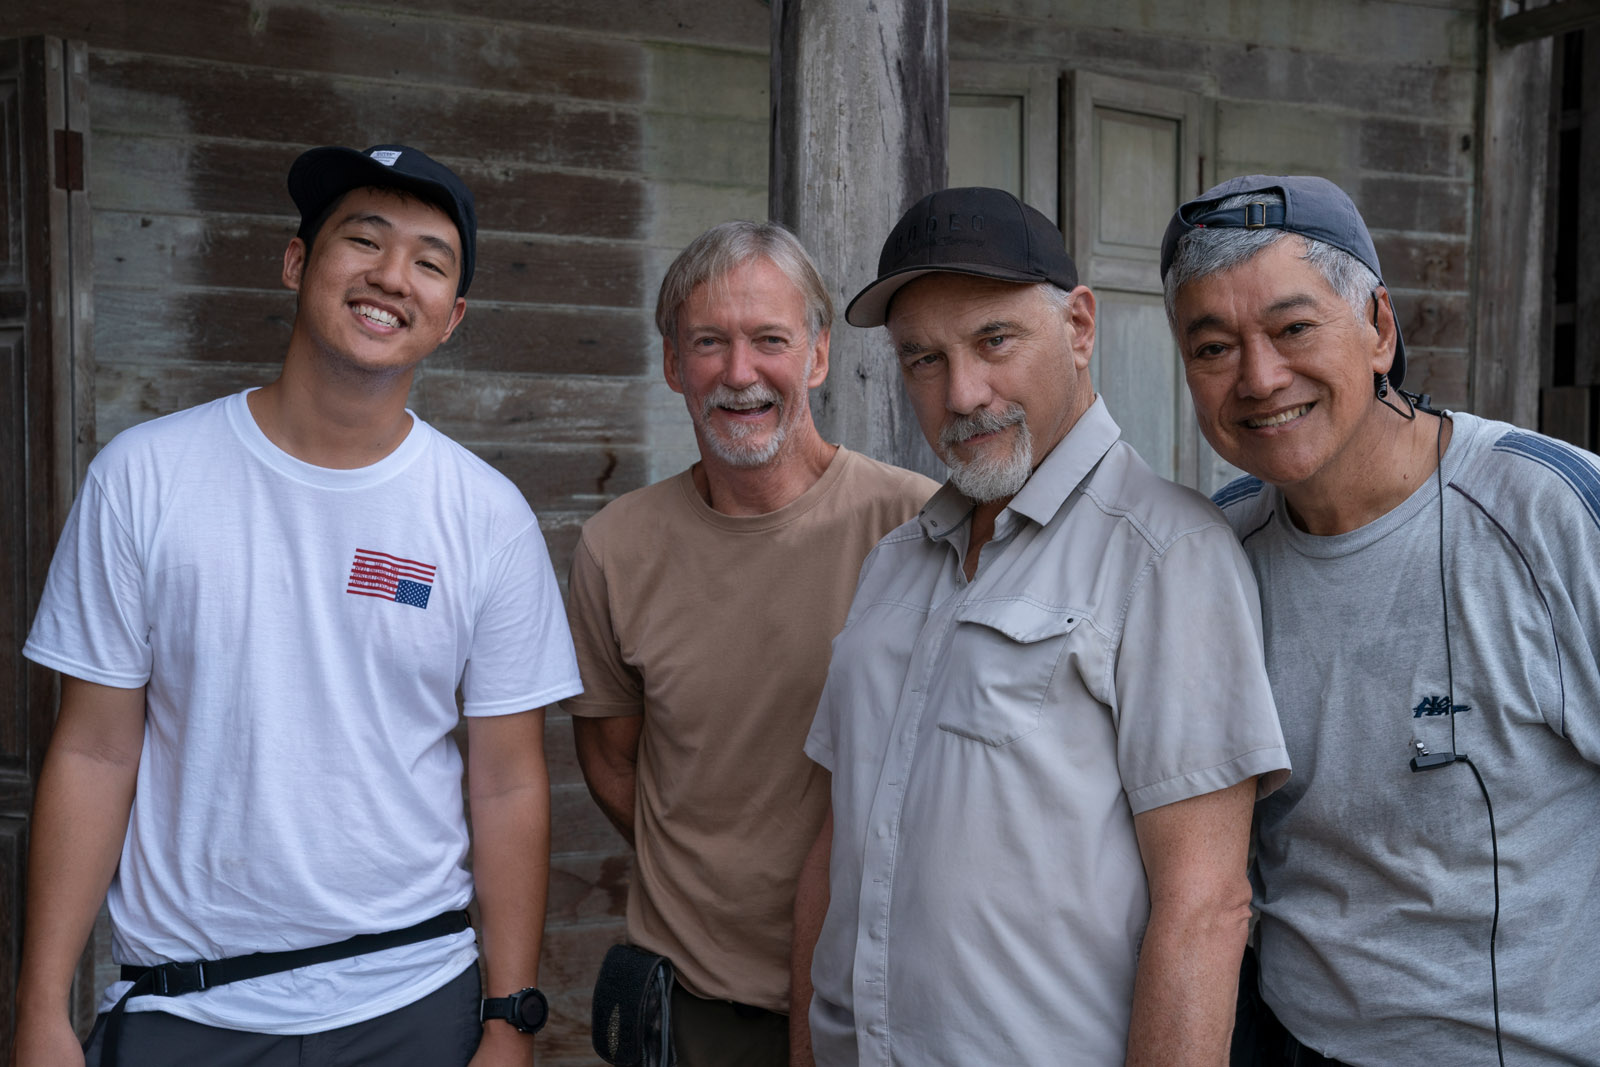 DP Newton Thomas Sigel ASC (2nd right) with his camera crew (Image: David Lee/Netflix)